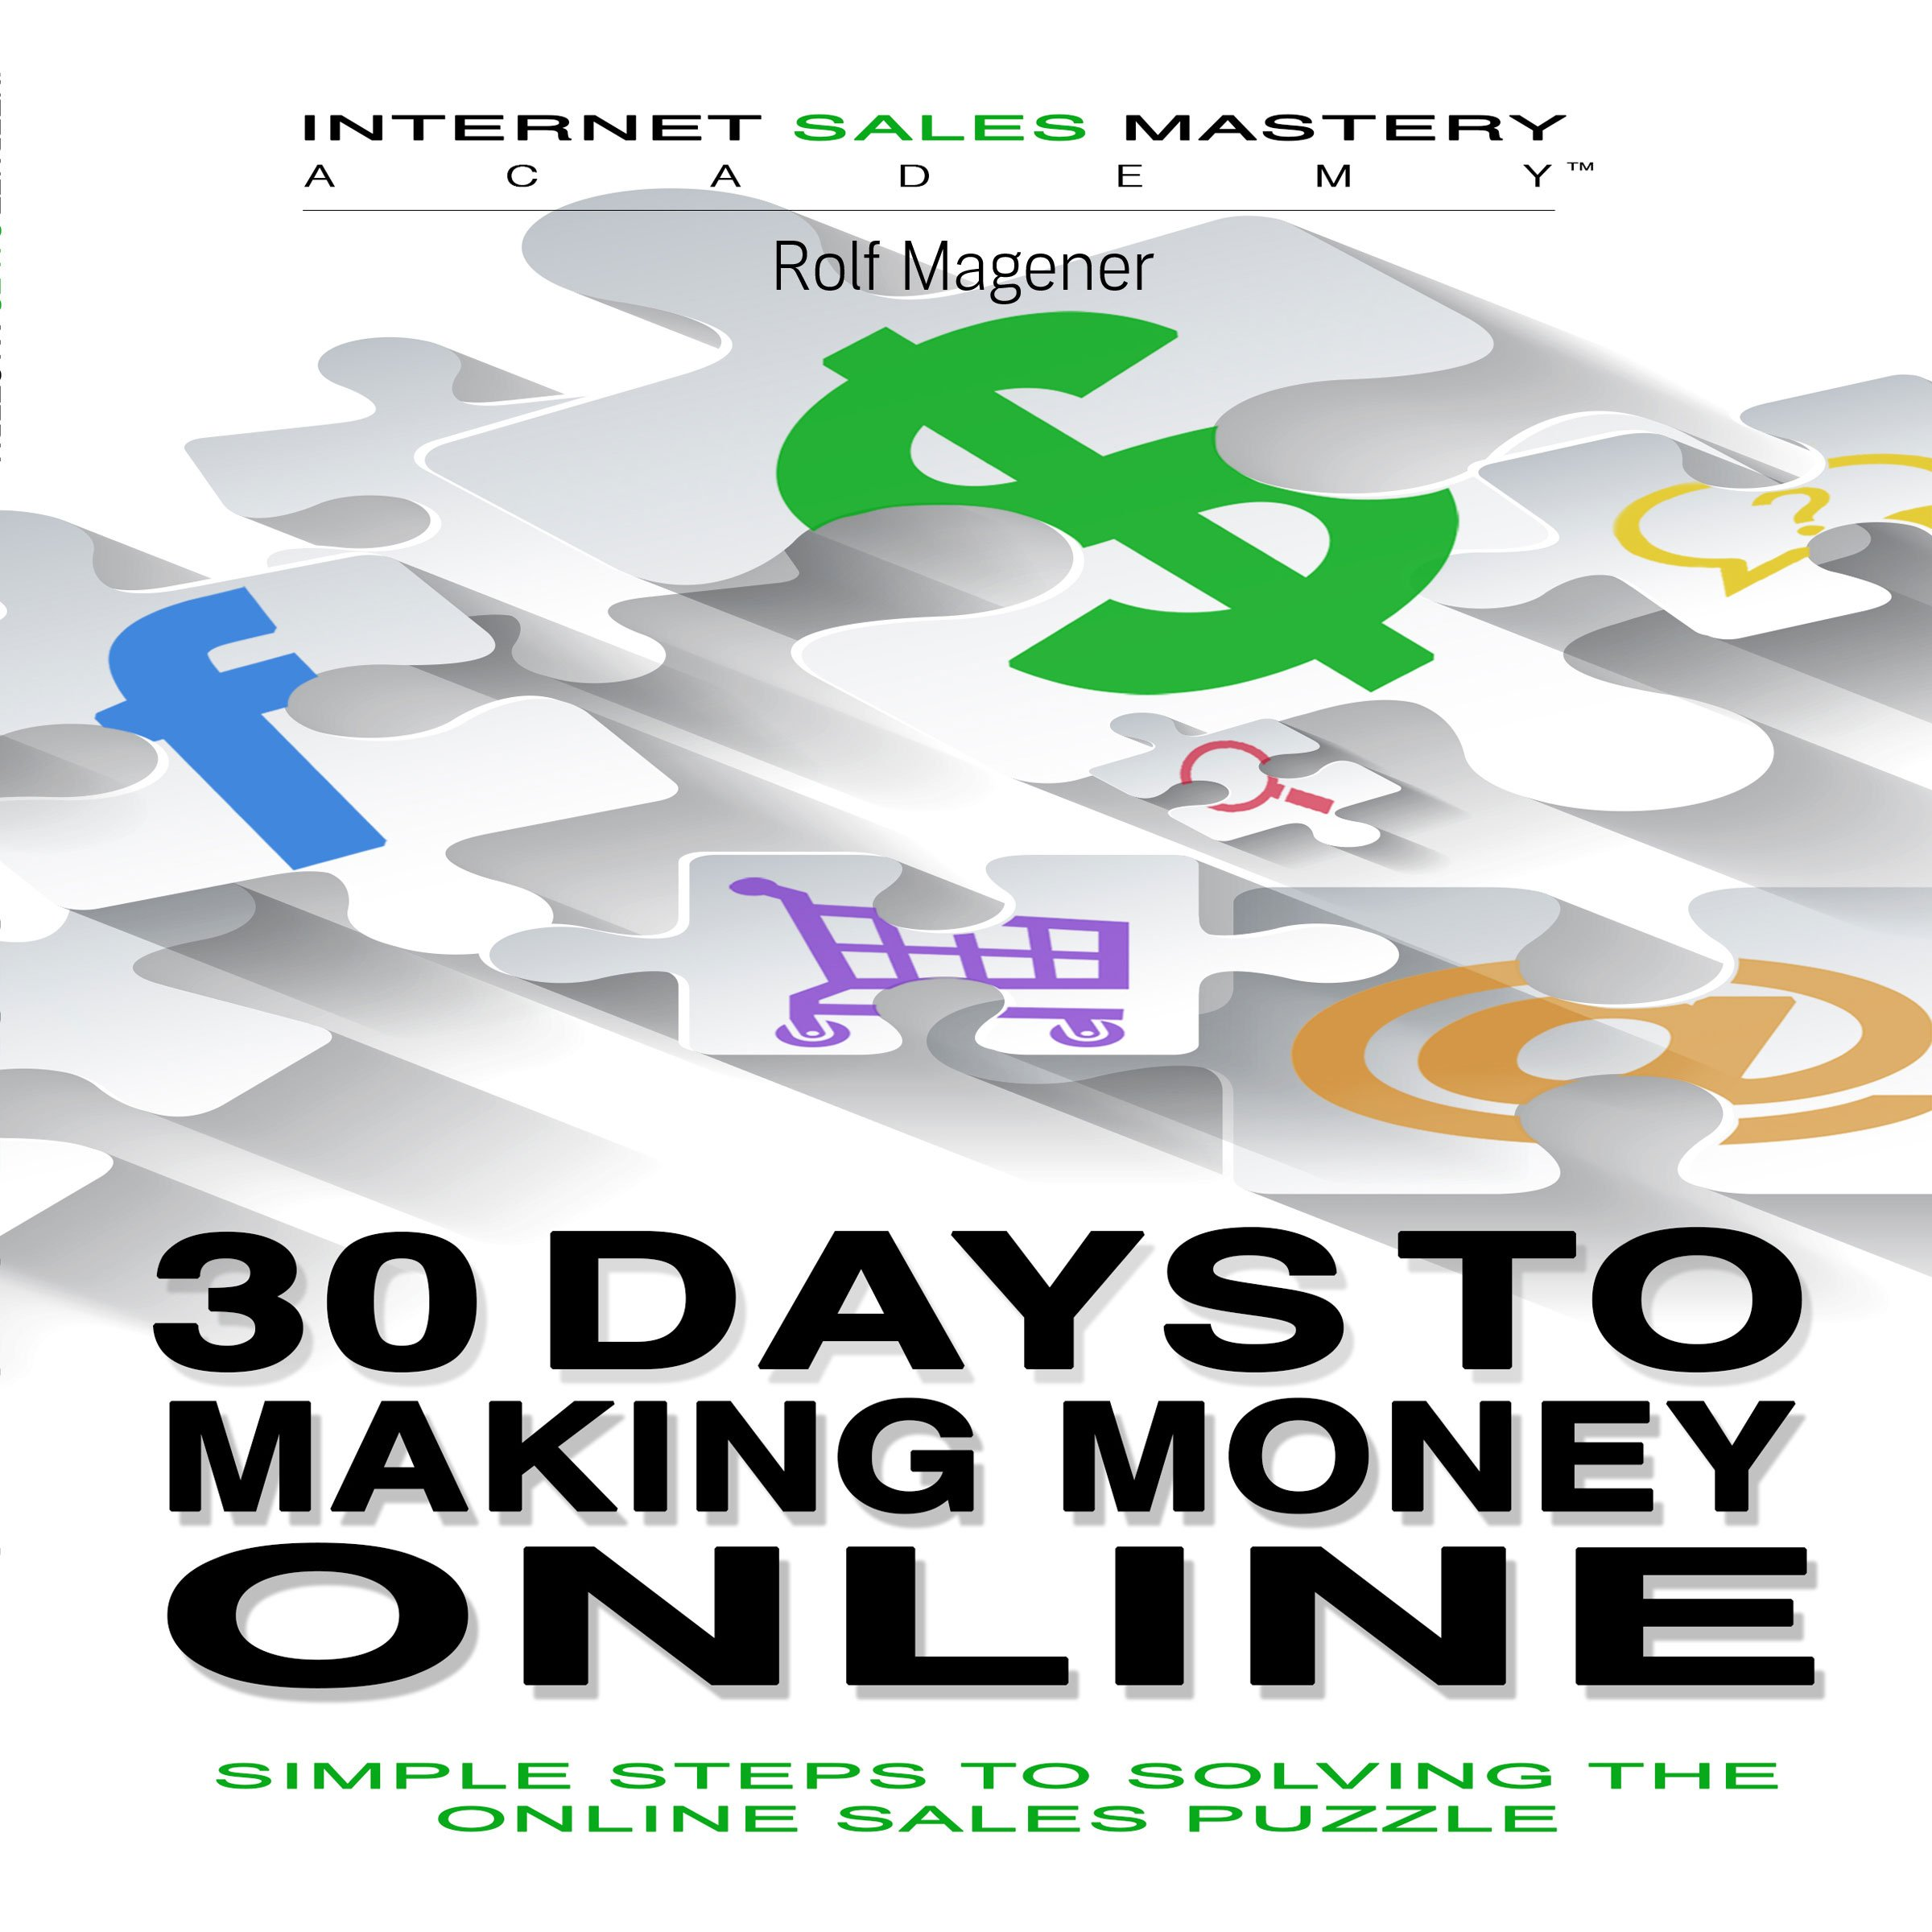 30 Days to Making Money Online: Simple Steps to Solving the Online Sales Puzzle